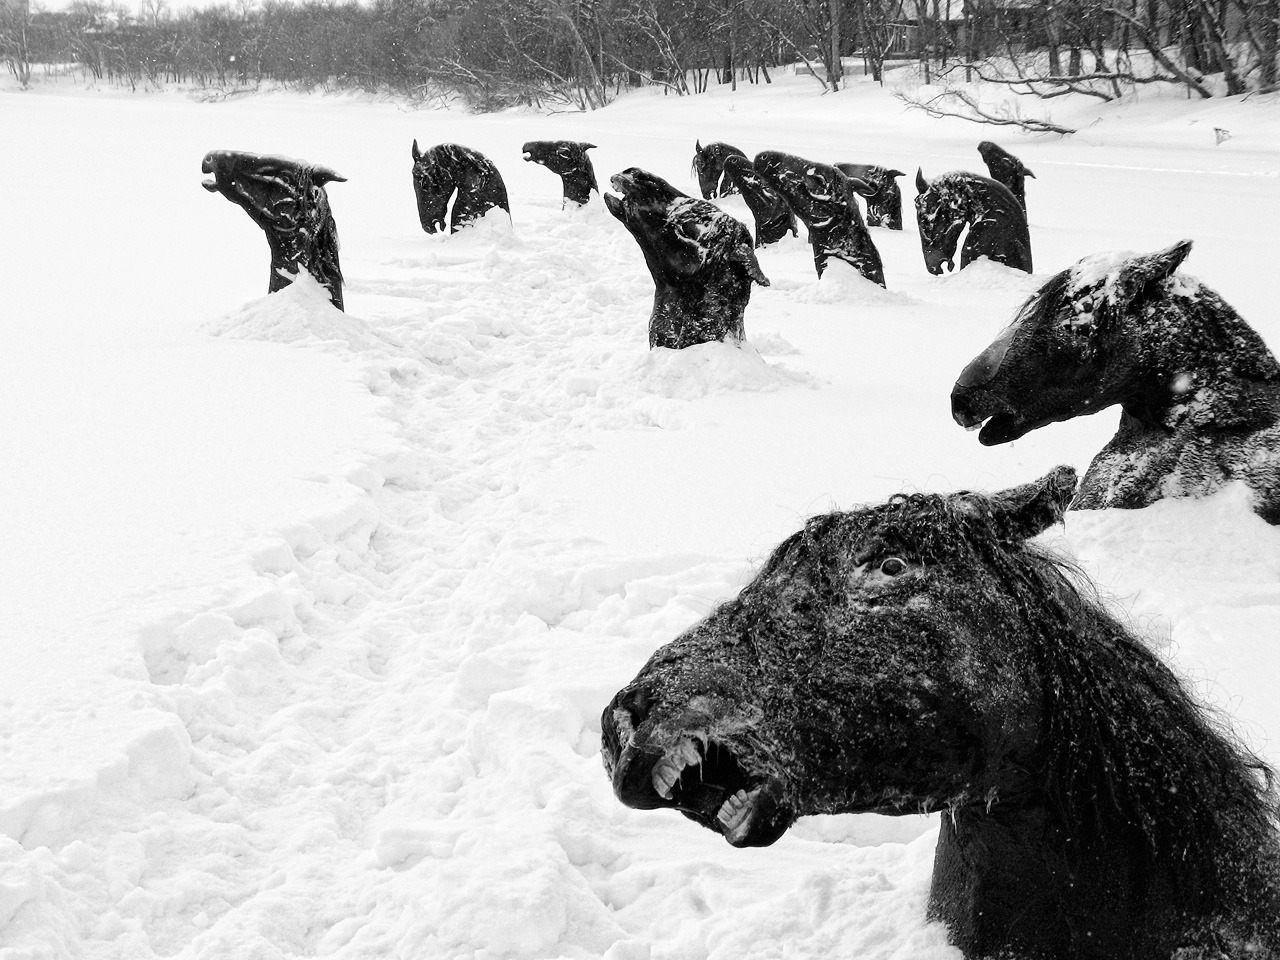 "homeofthevain:  Guy Maddin, My Winnipeg (film still) ""During 1926 cold winter, all the horses from the hippodrome fled away after the stables went on fire. Their only scape-way was the river. But they all froze before managing to reach the opposite side. Their sculptural heads with terror still in their eyes served as a leisure park that season. I wonder in which moment the following spring carried them out into the sea, without anyone noticing."" Via deconcrete. Buy My Winnipeg. More film stills."